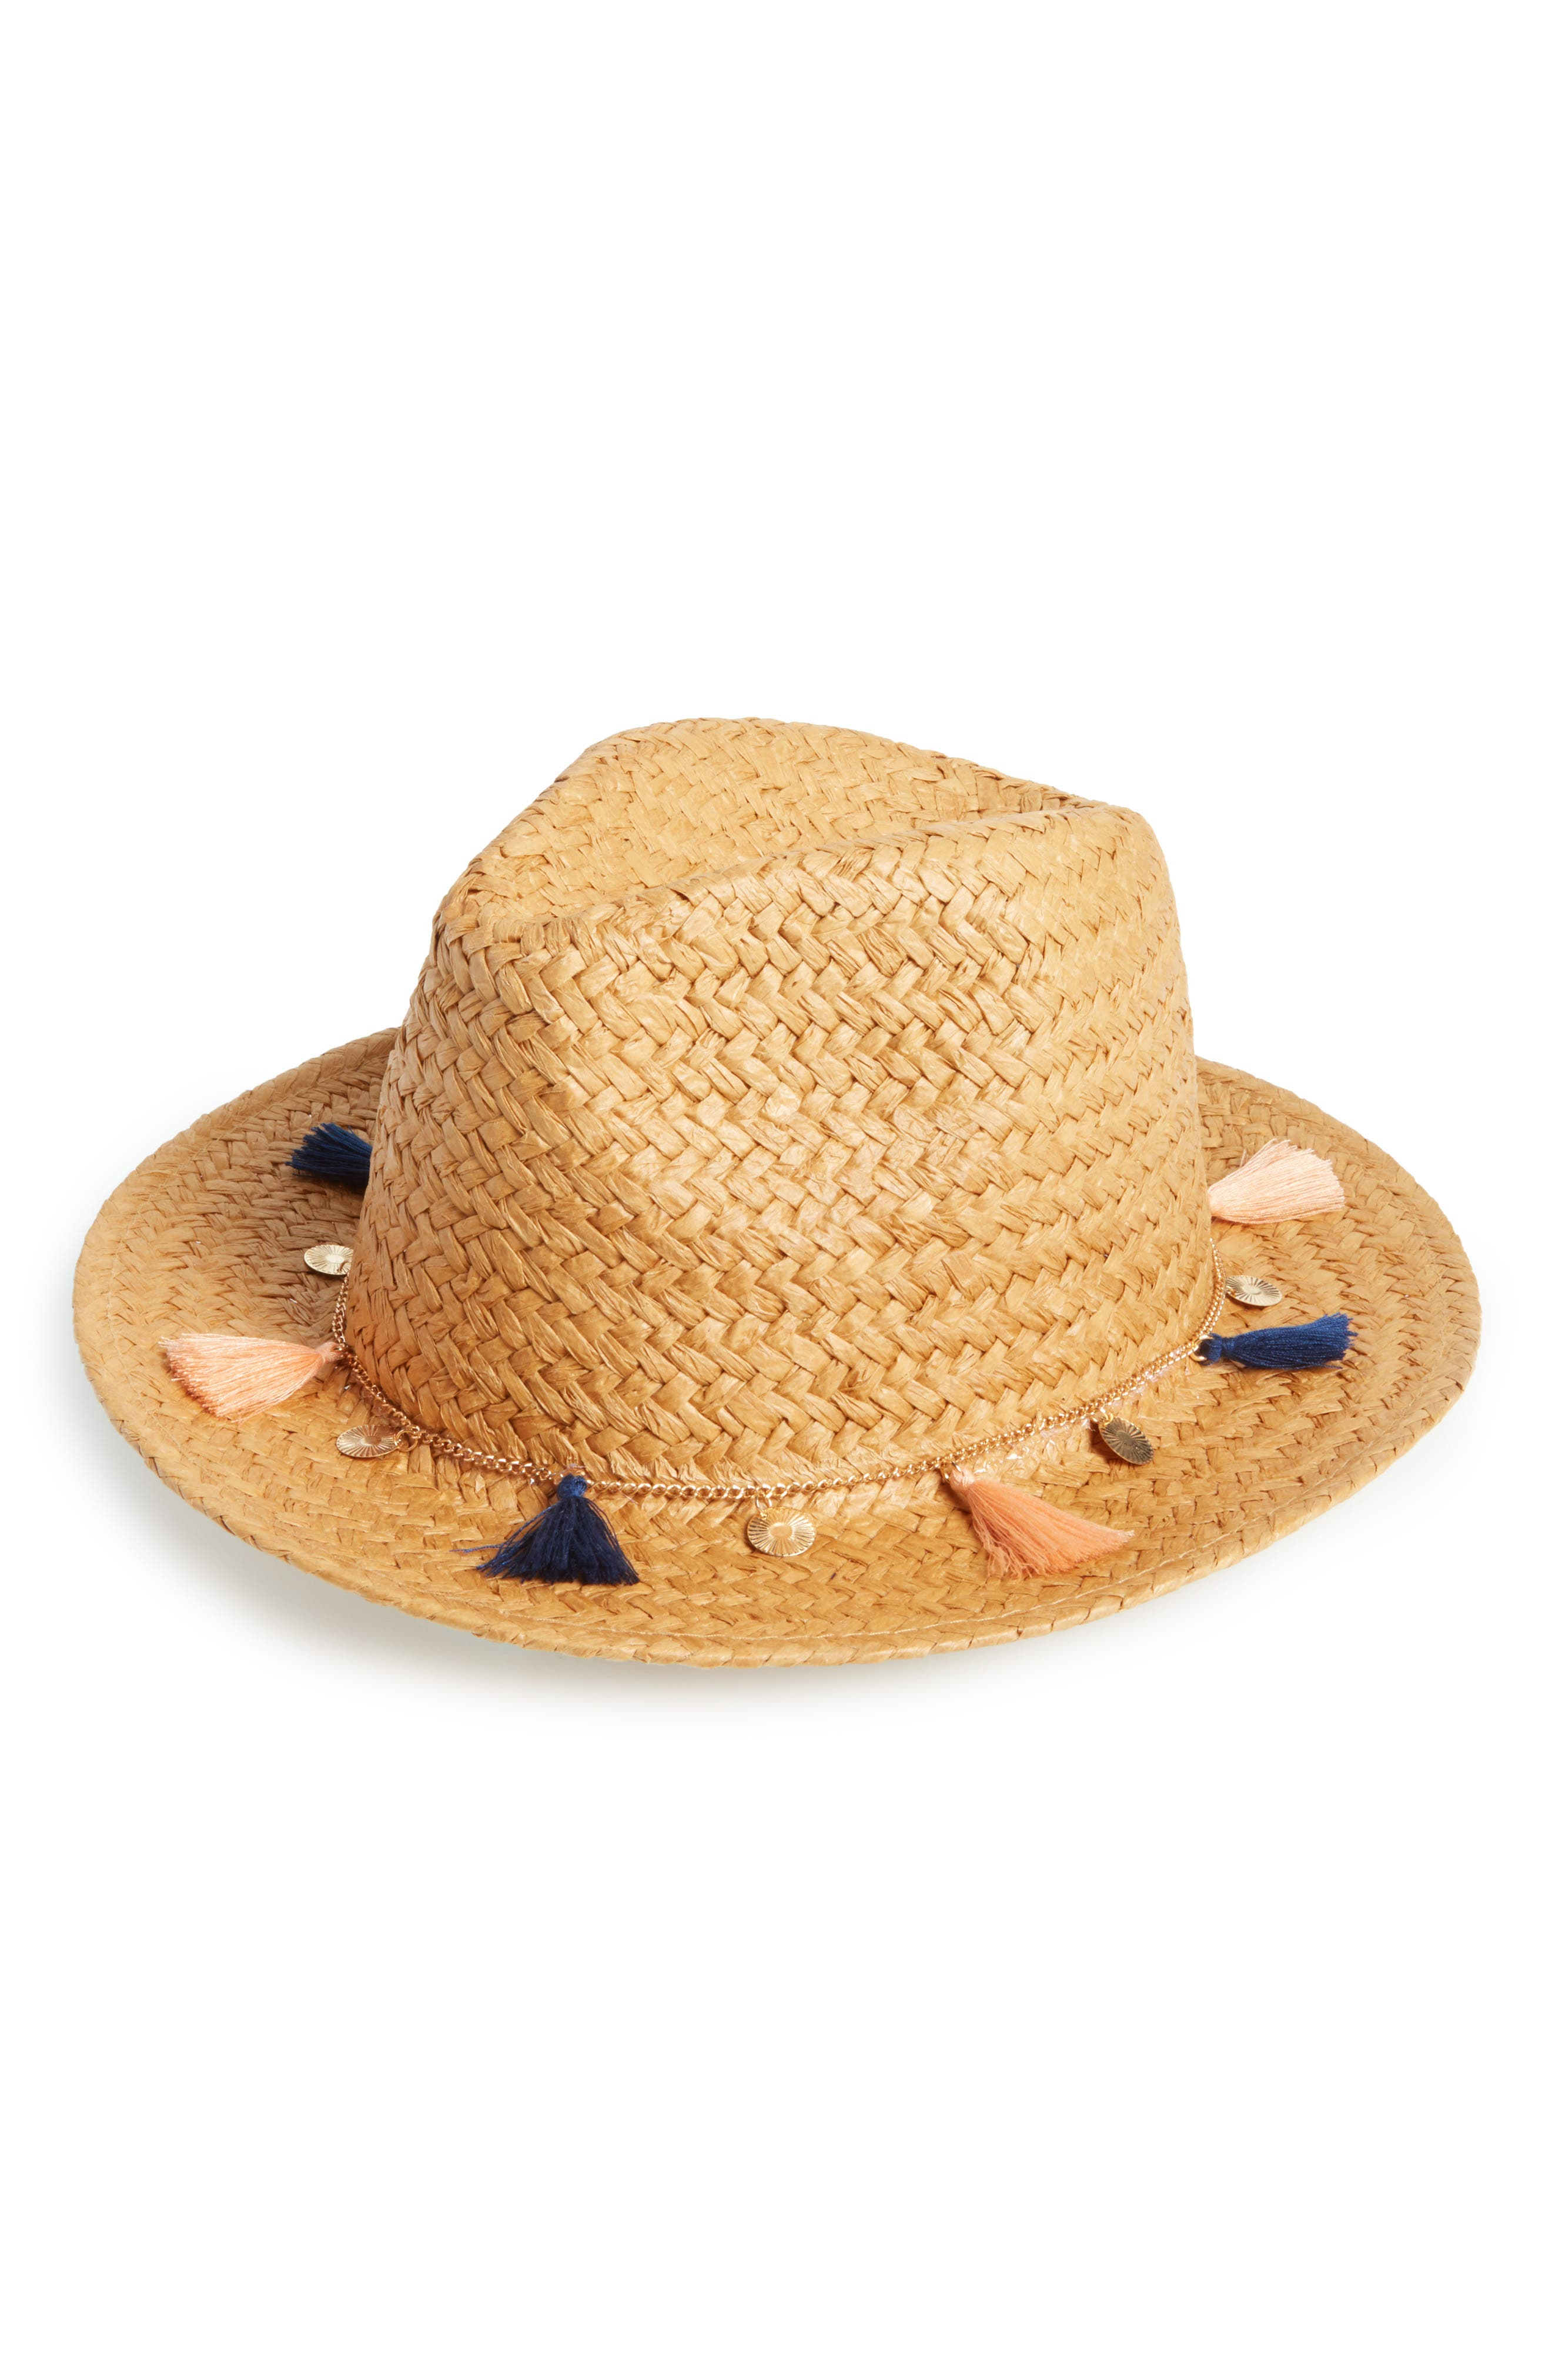 Alternate Image 1 Selected - BP. Tassel and Coins Straw Fedora